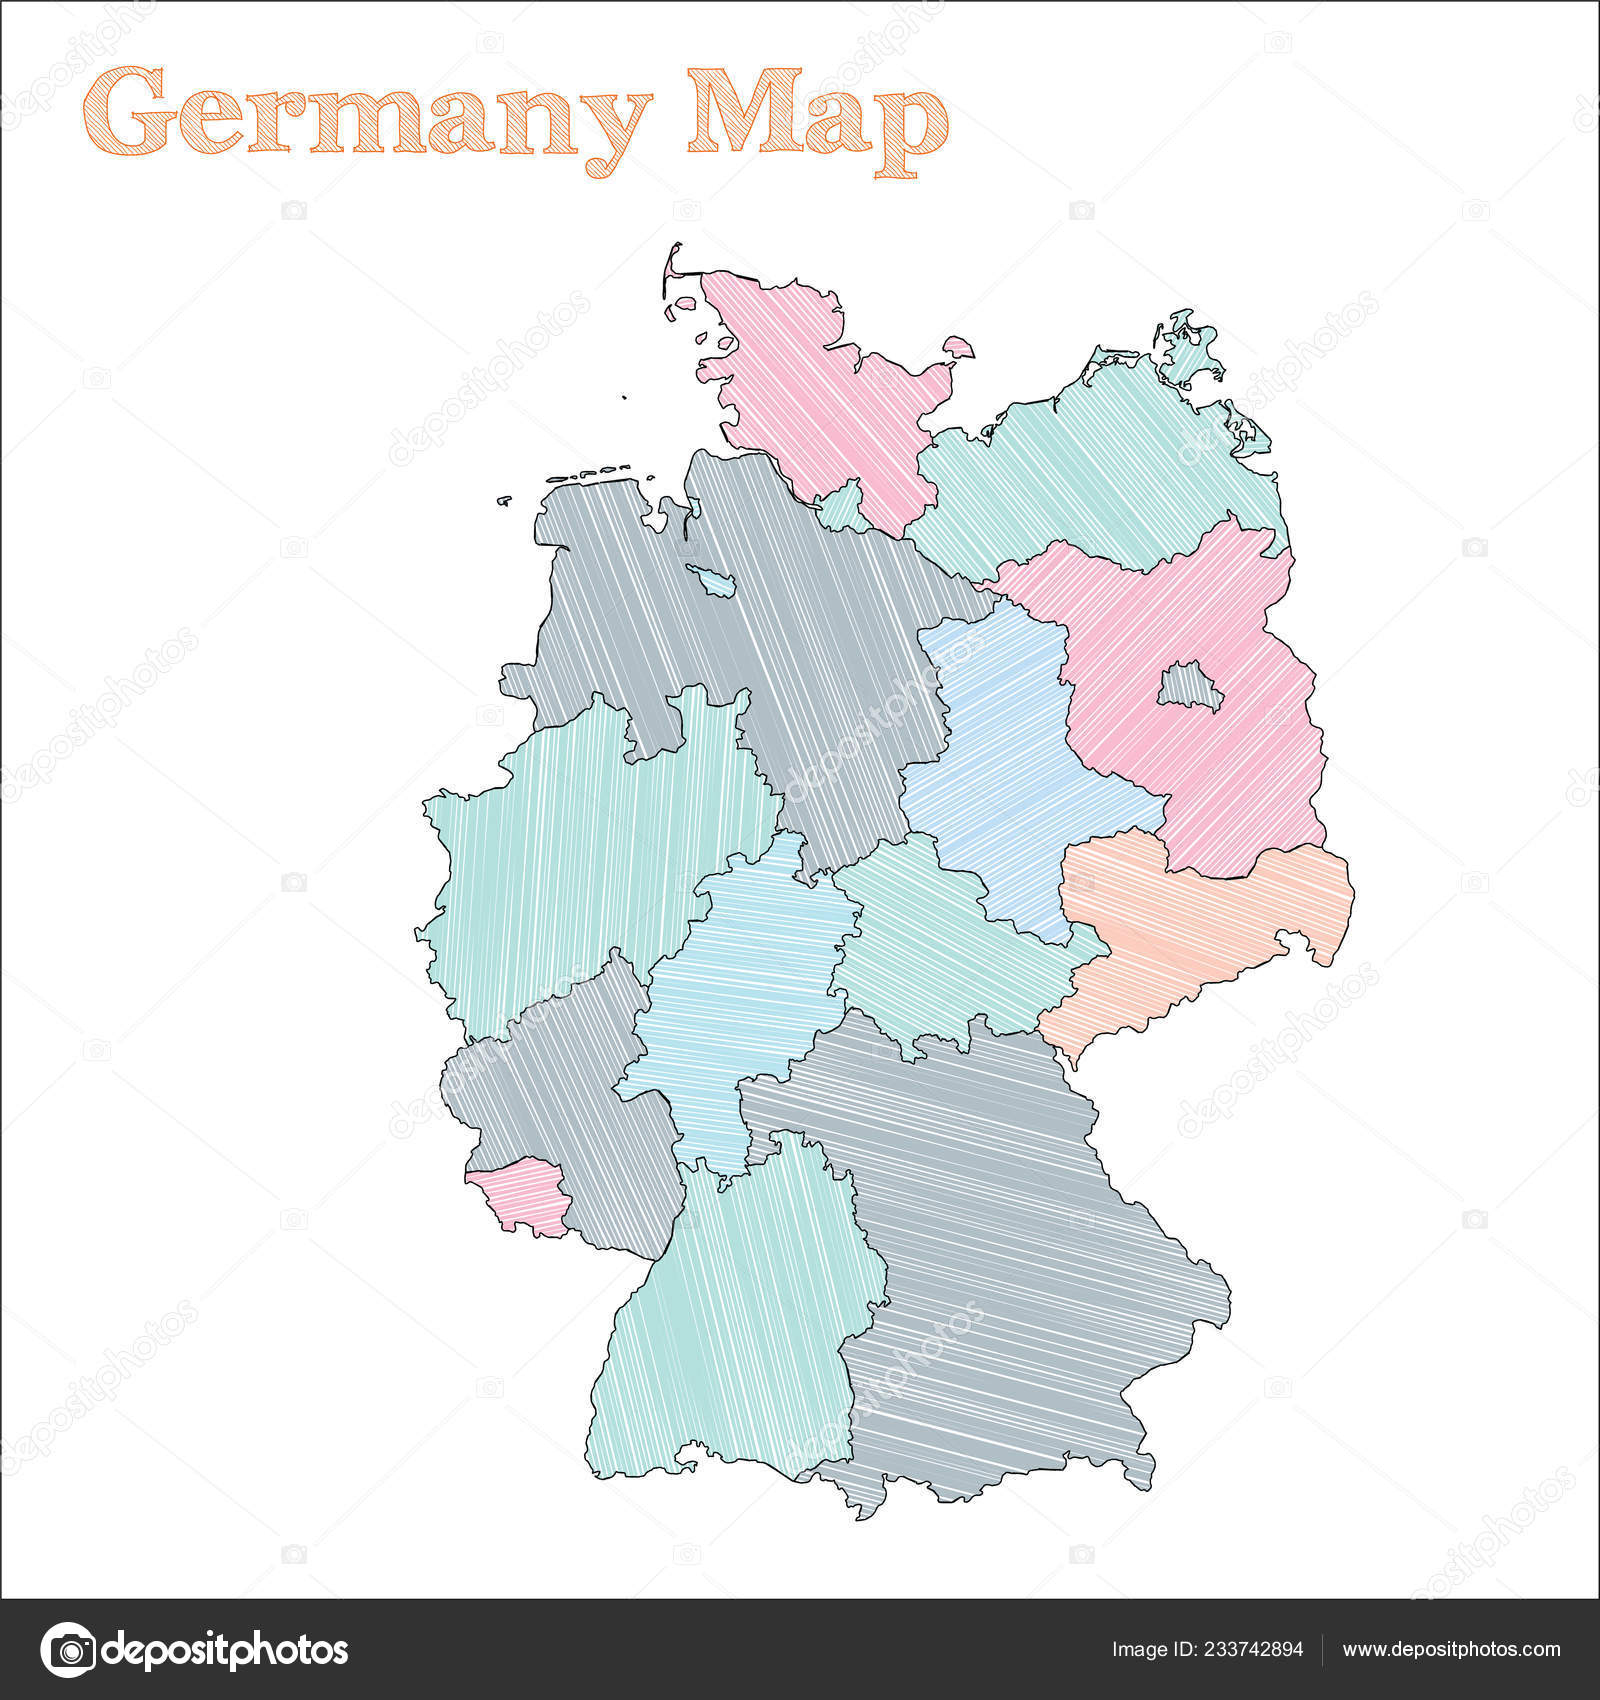 Germany handdrawn map Colourful sketchy country outline ... on germany industry map, germany political map, germany cities map, germany travel map, germany landmark map, germany water map, east germany map, germany major city map, germany surname map, germany country map, germany latitude map, germany power map, germany world map, germany located on map, germany road map, germany capital map, germany culture map, germany map with states, germany region map, germany postal map,